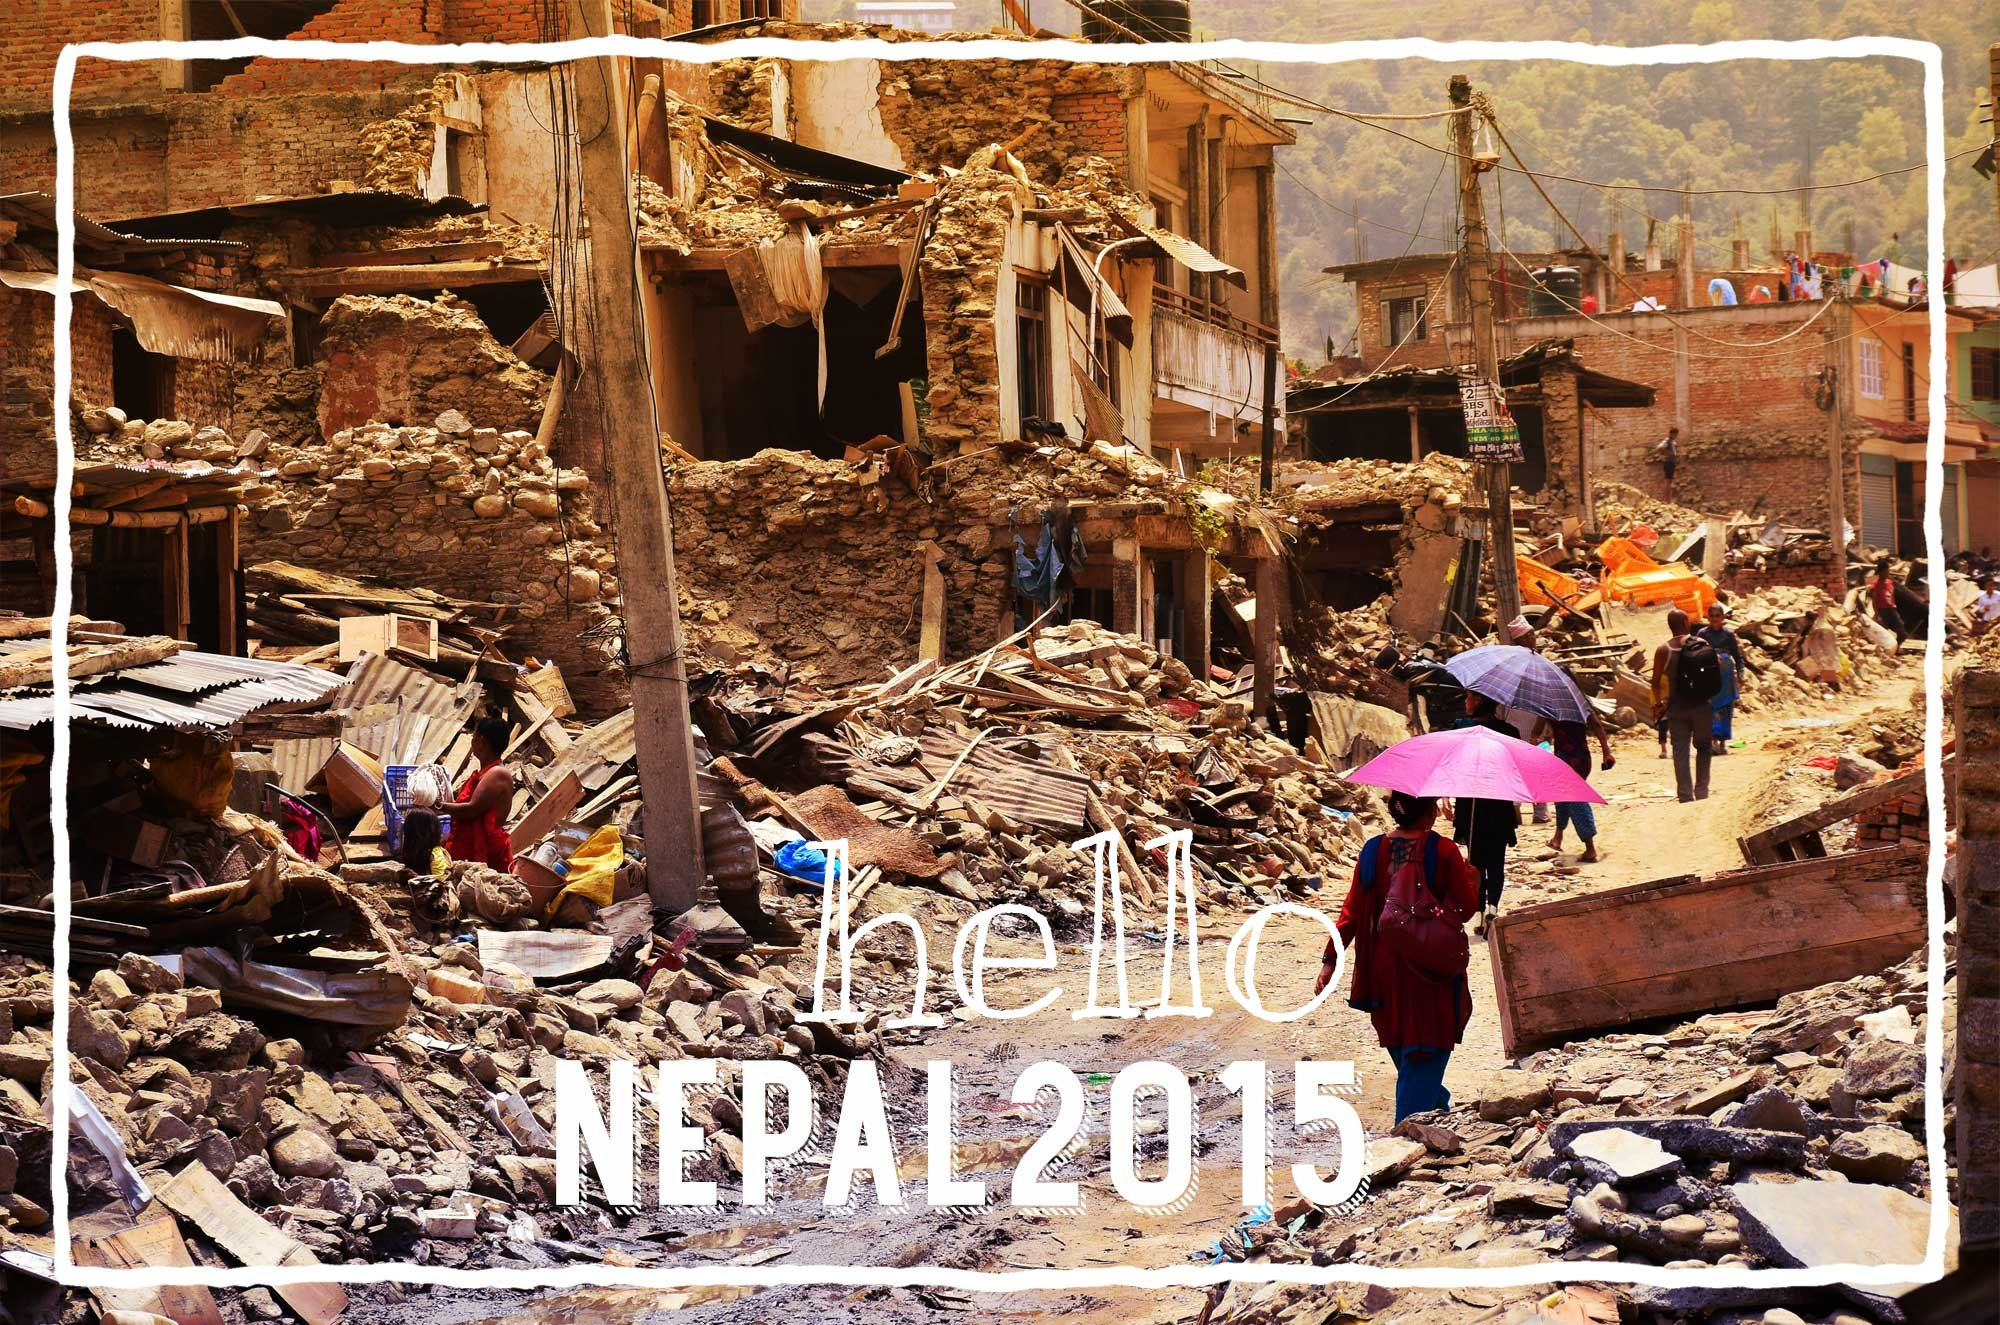 MISSIONS      07 - 16:   Our missions to Nepal to help the local people still effected from the devastating May 2015 earthquakes.   The team has now safely arrived in Nepal - follow the team here!